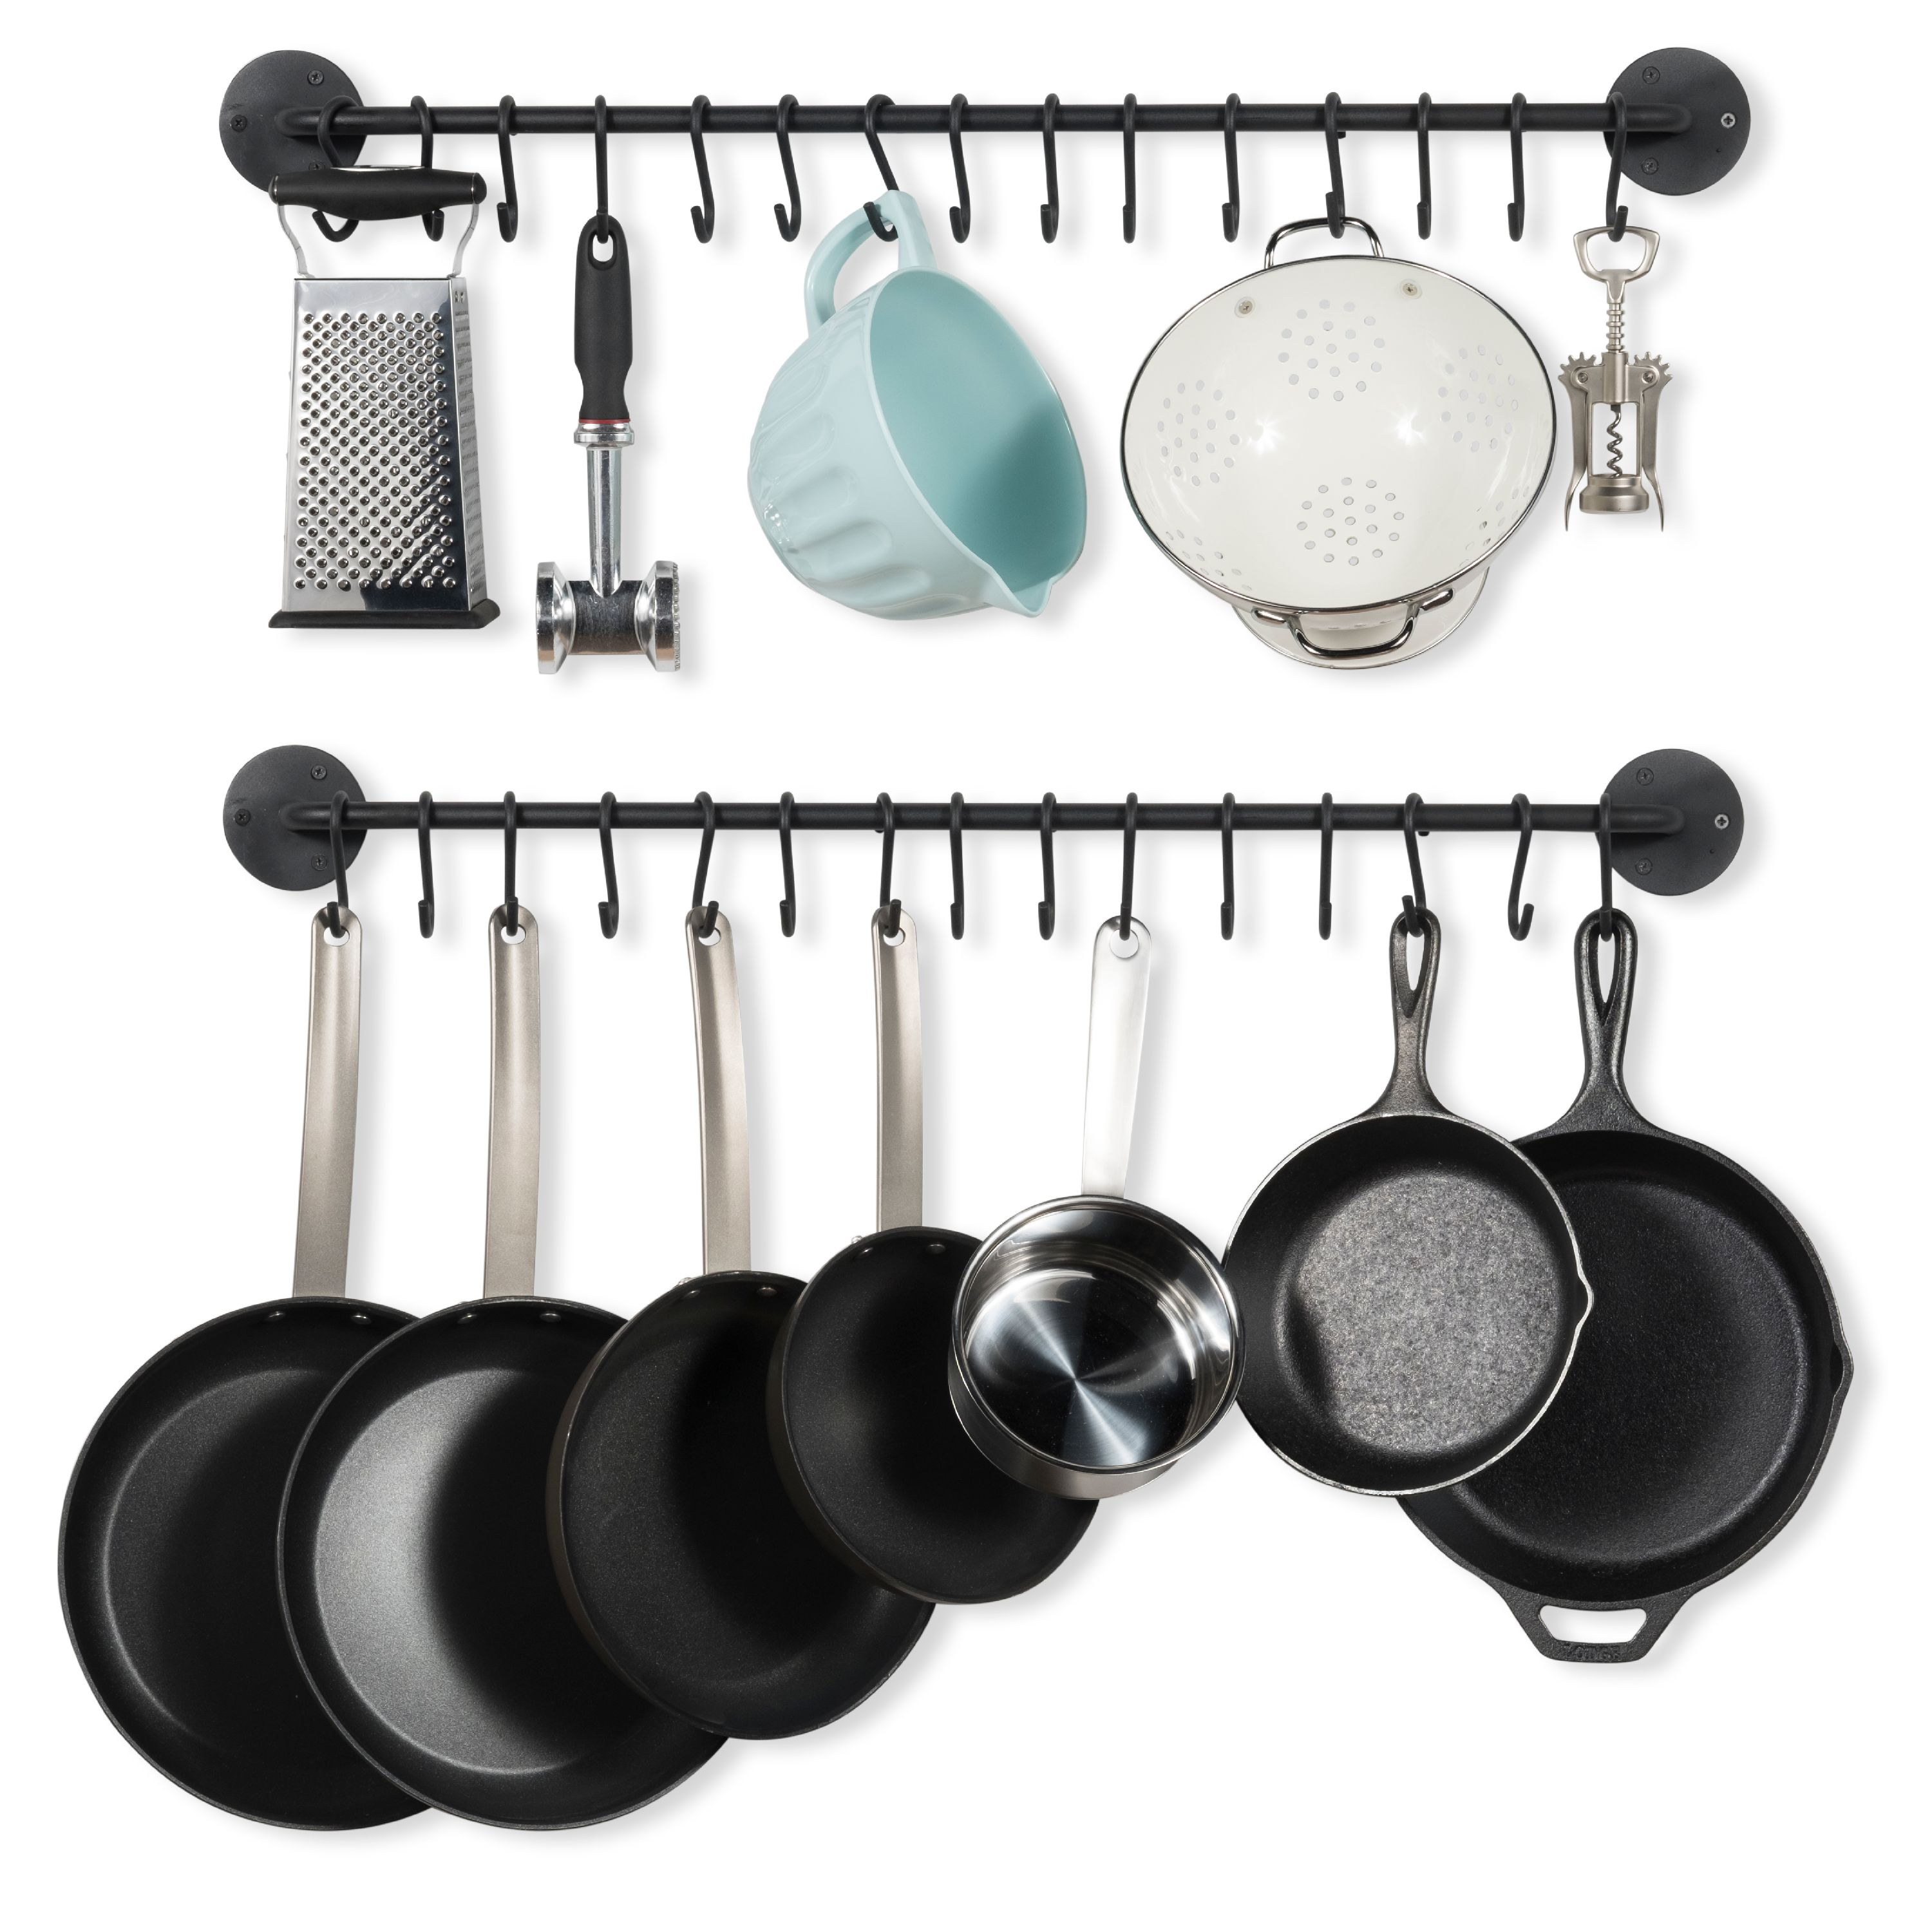 Wall Mount Heavy-Duty Iron 33 Inch Hanging Utensil Pot Pan Lid Organizer Rod with 10 S-Hooks by Wallniture Set of 2 Black